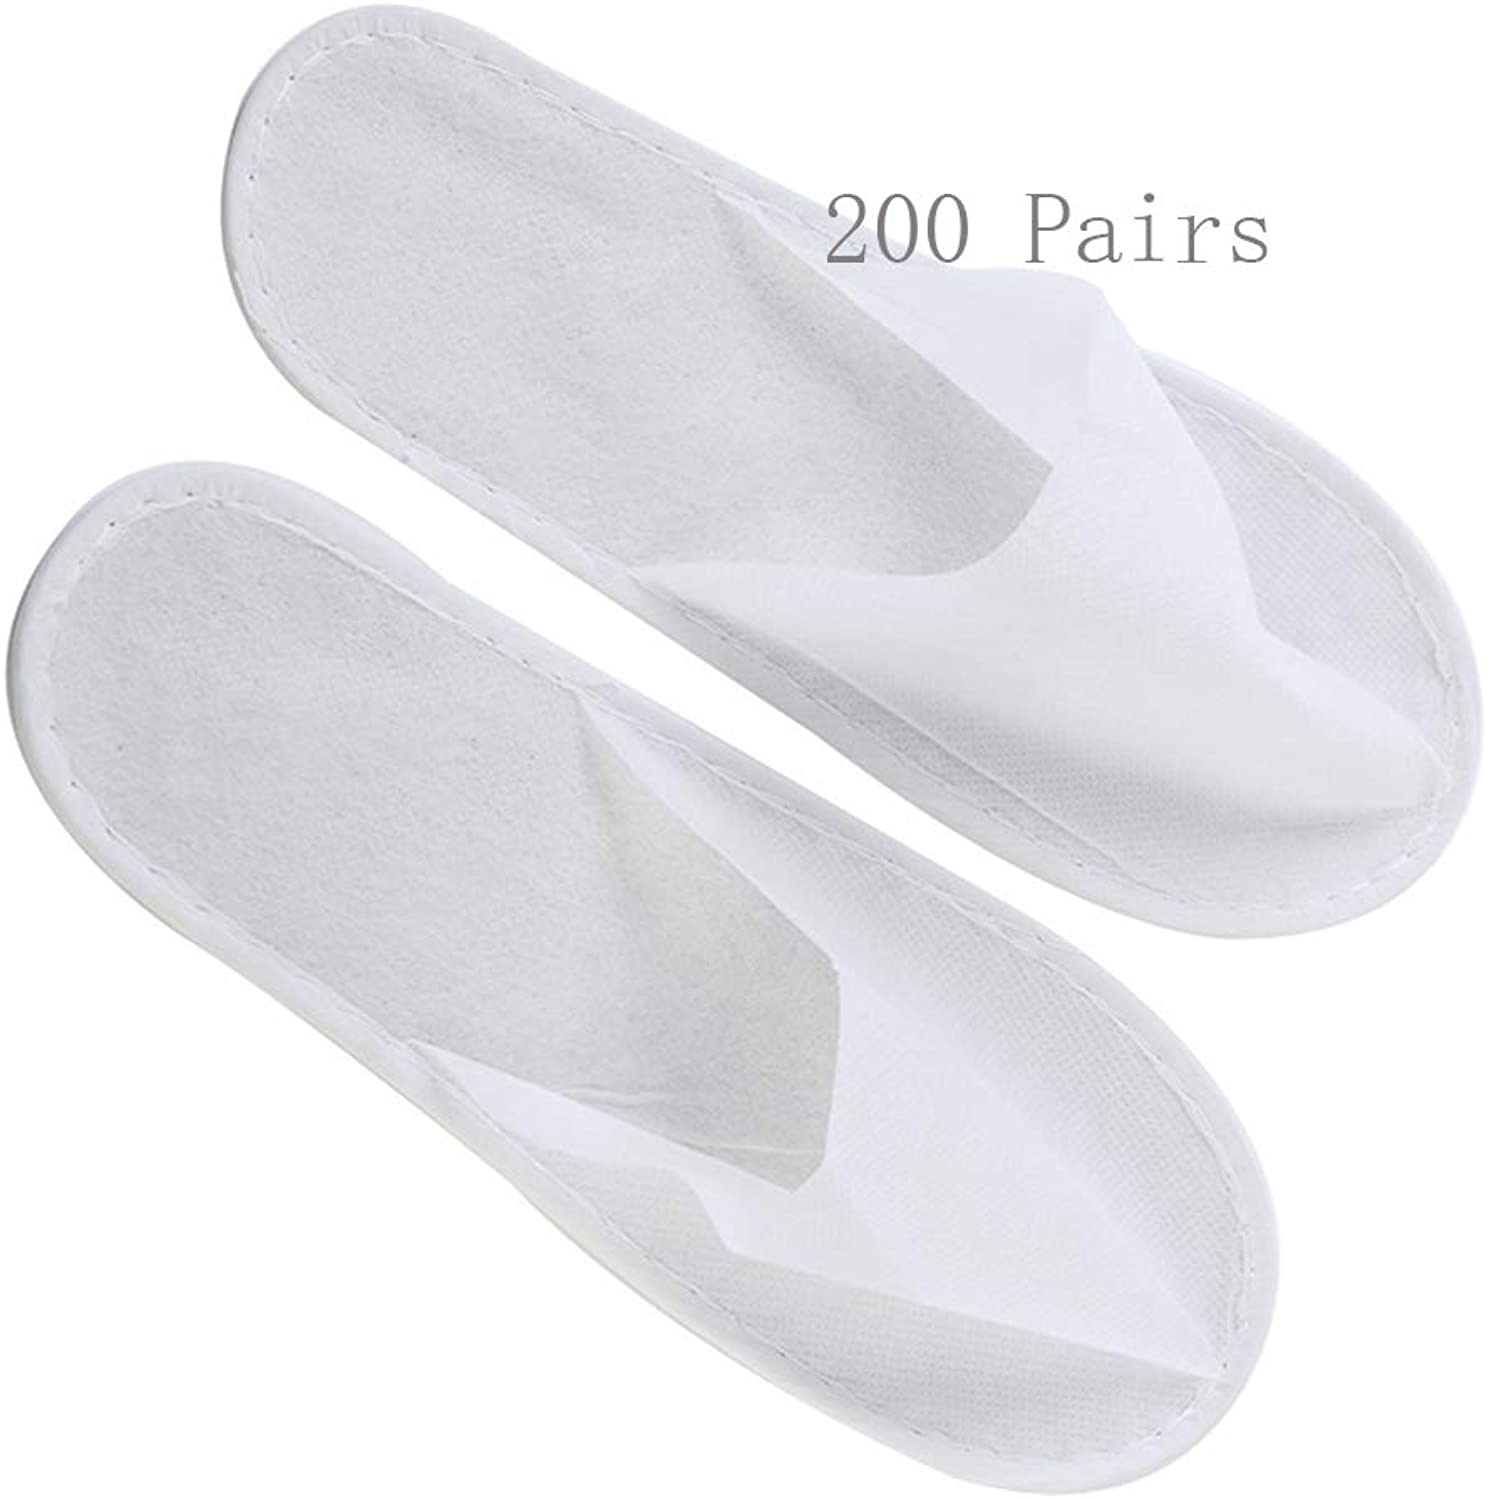 Slippers Women and Men Disposable Portable Hotel Slippers Women's Disposable Slippers Women's Slippers 200 Double Hotel Spa Beauty Club Slippers Non-Woven Men's Slim Sole Spa-